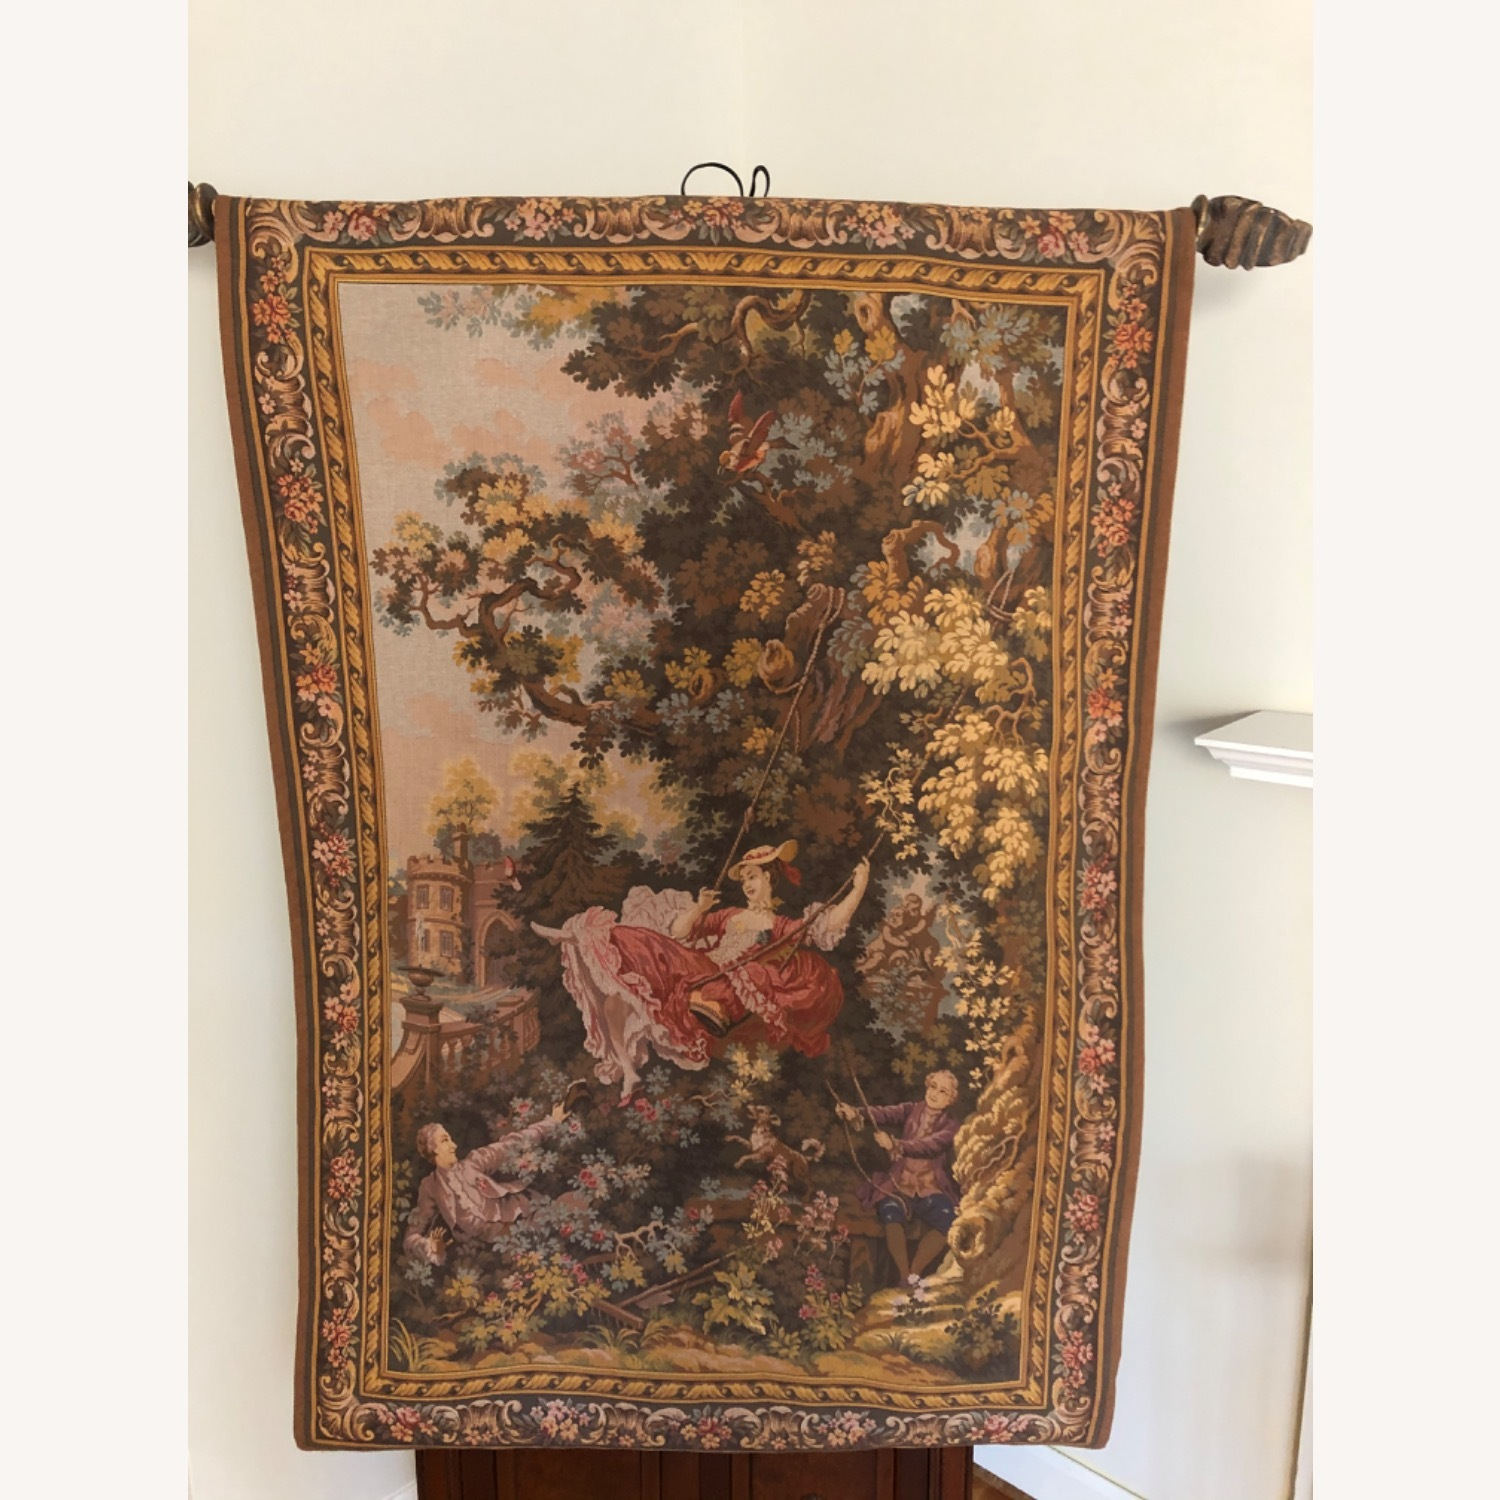 High Point Genre Gobelins French Tapestry - image-1